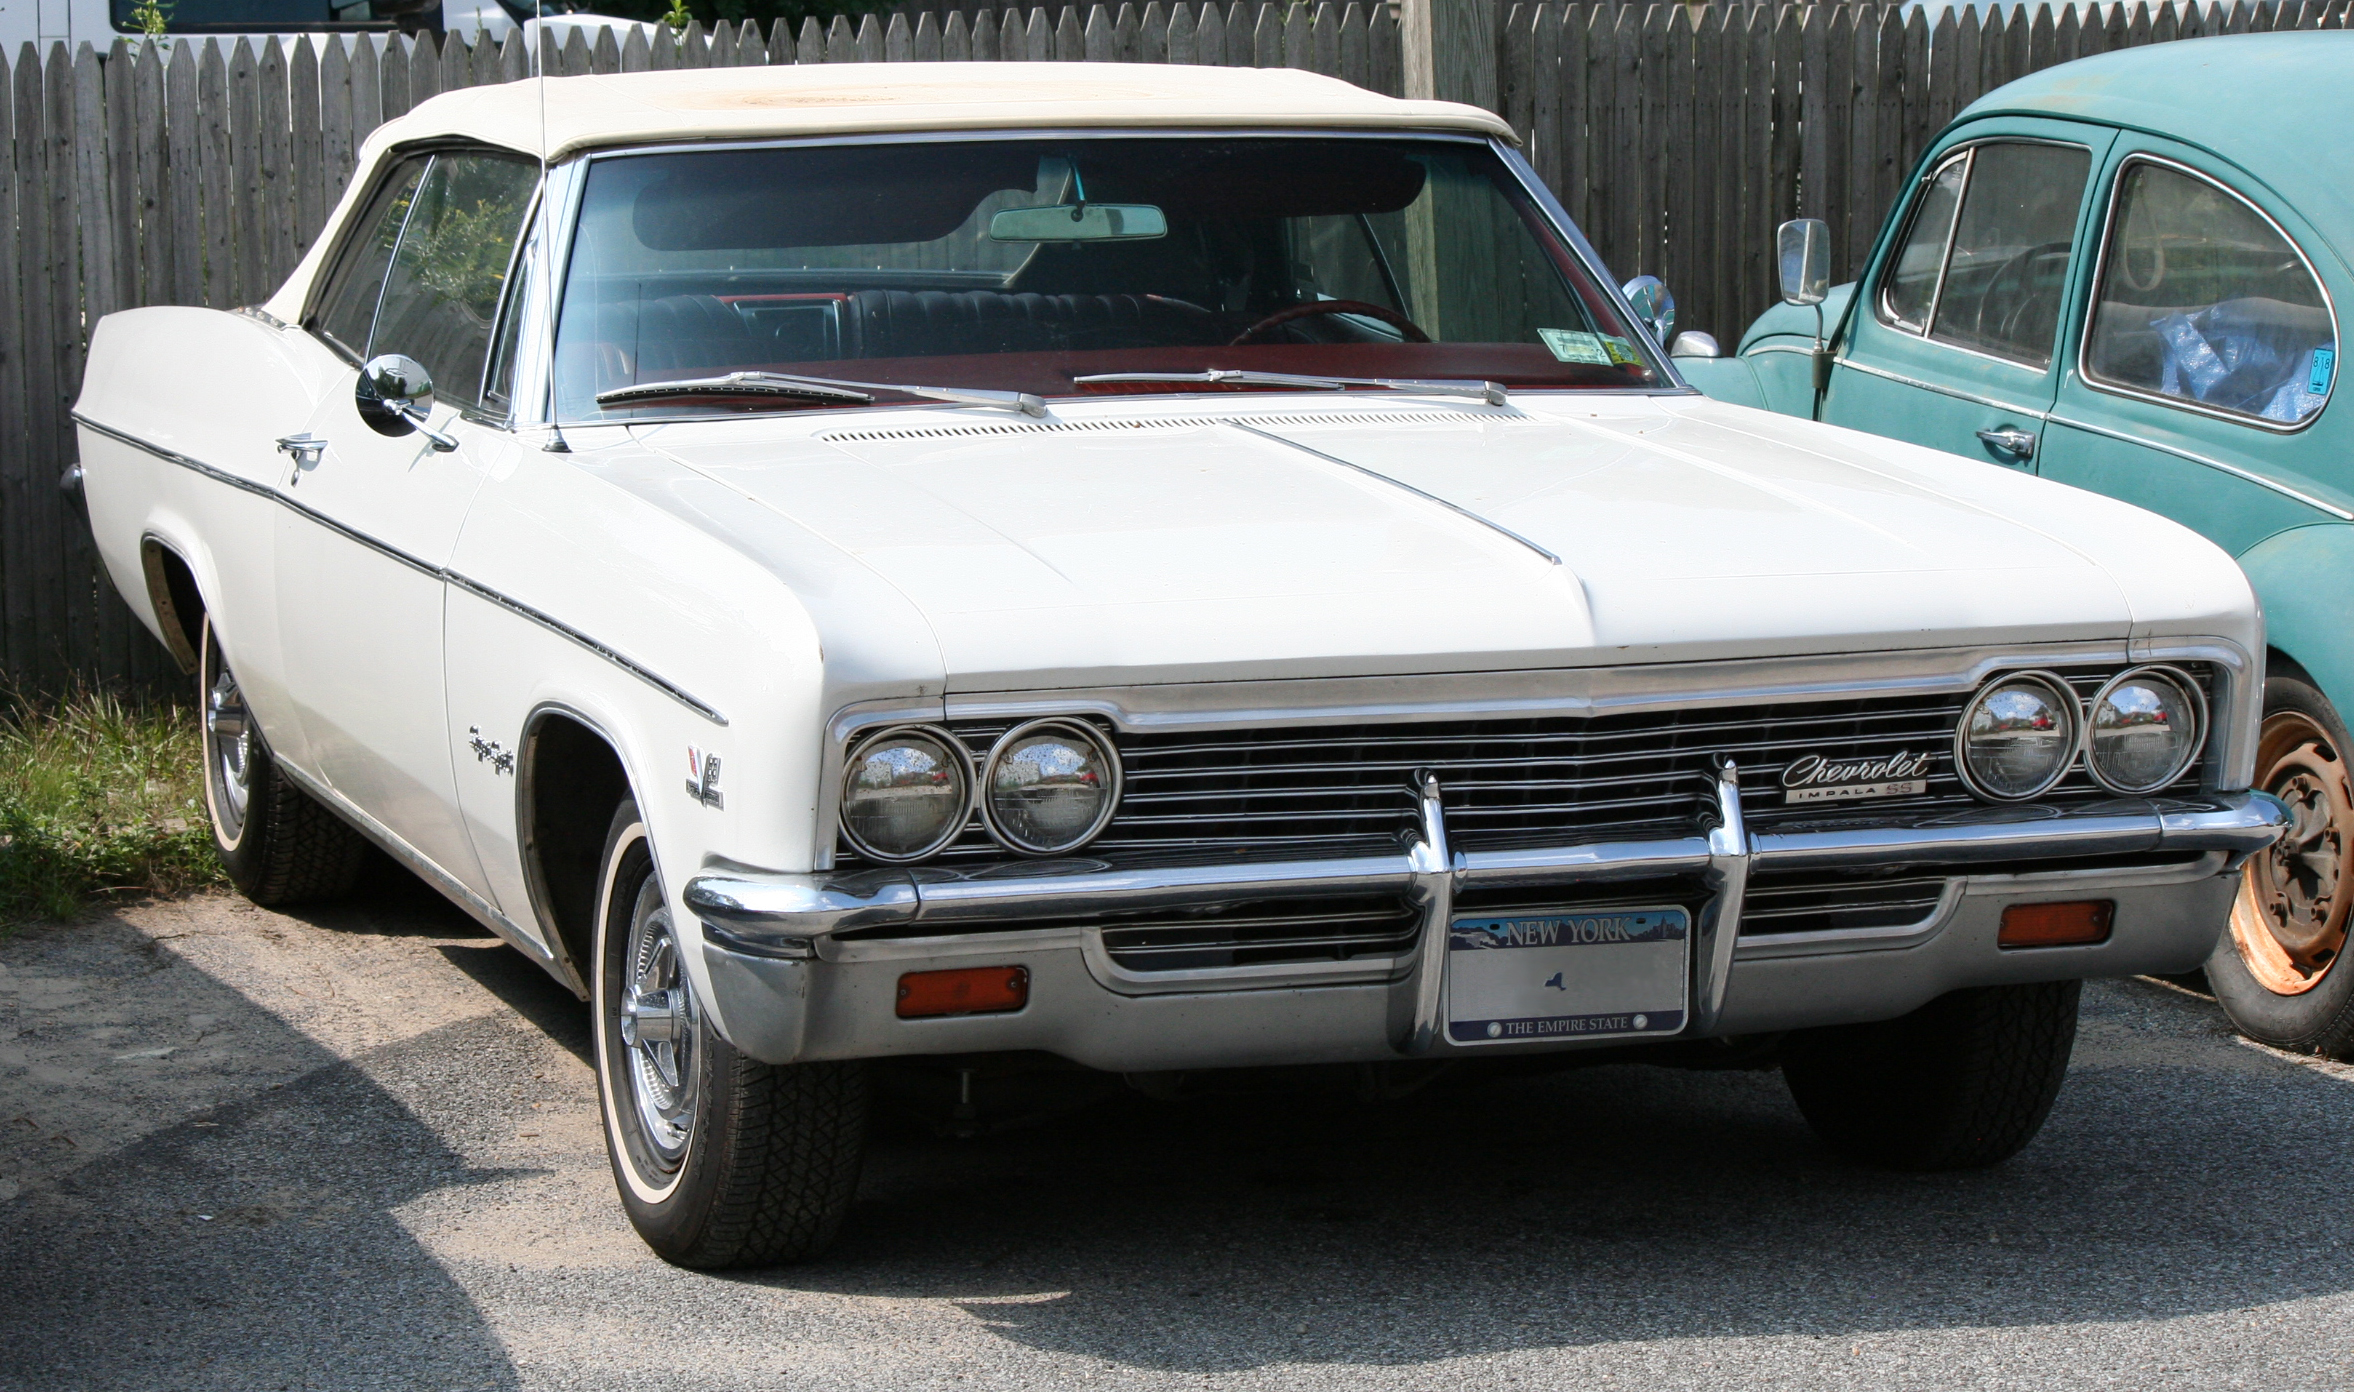 White_1966_Chevrolet_Impala_SS_Convertible file white 1966 chevrolet impala ss convertible jpg wikimedia chevrolet 1966 impala wiring diagram at crackthecode.co